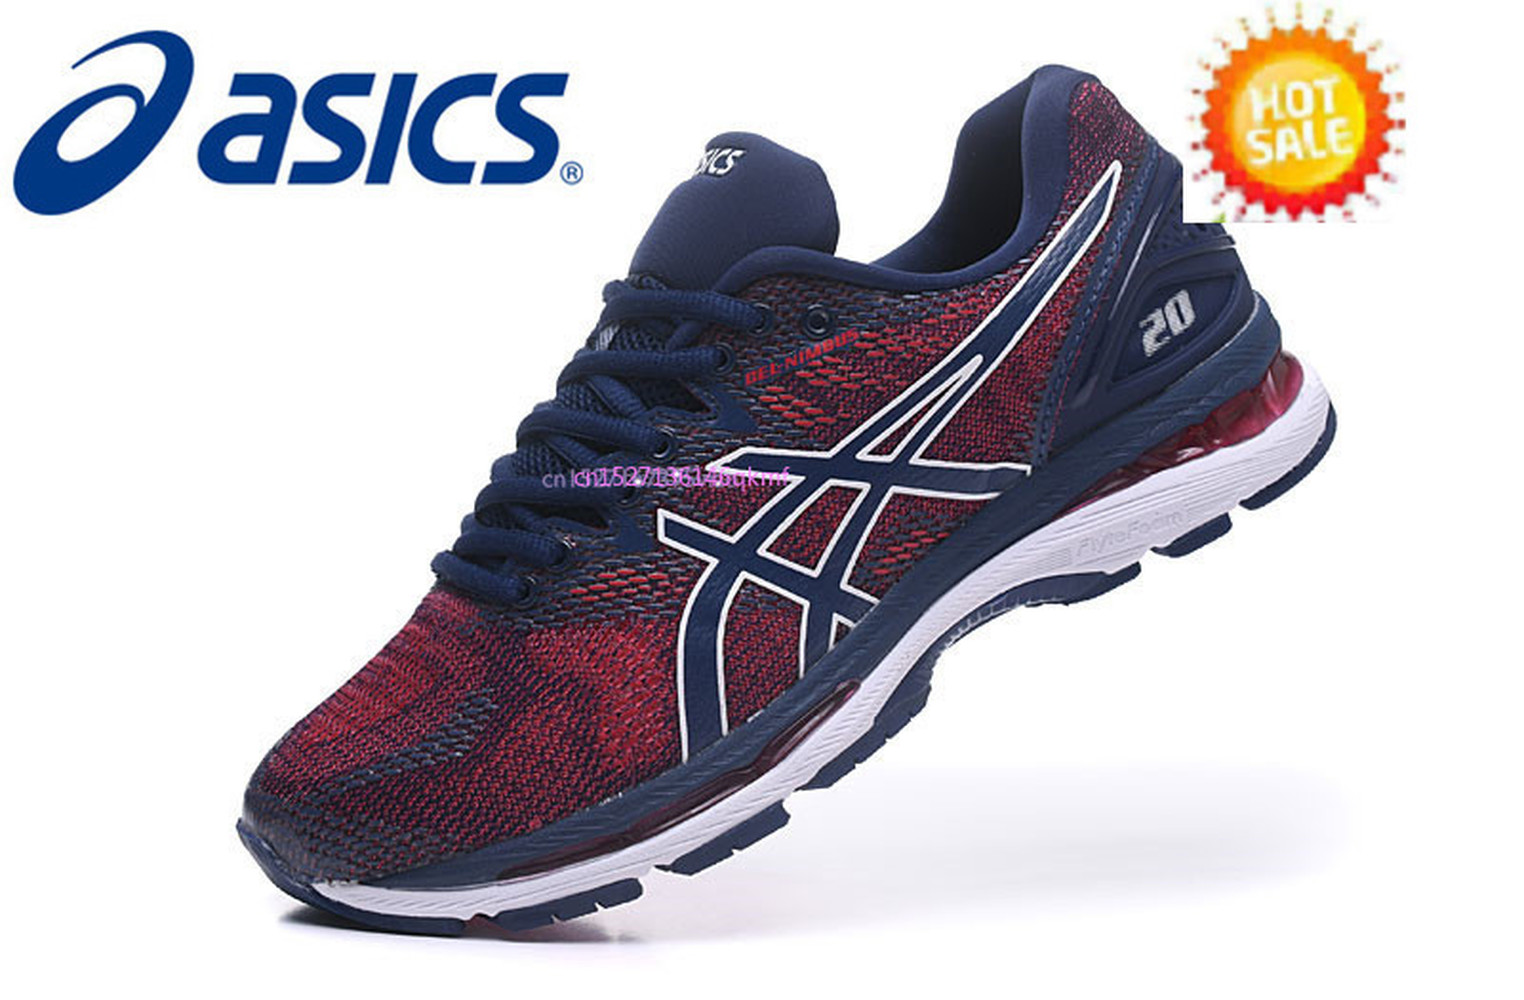 Original Asics Gel-Nimbus 20 Running Shoes New Arrivals Asics Men's Sports Shoes Size Eur 40.5-45